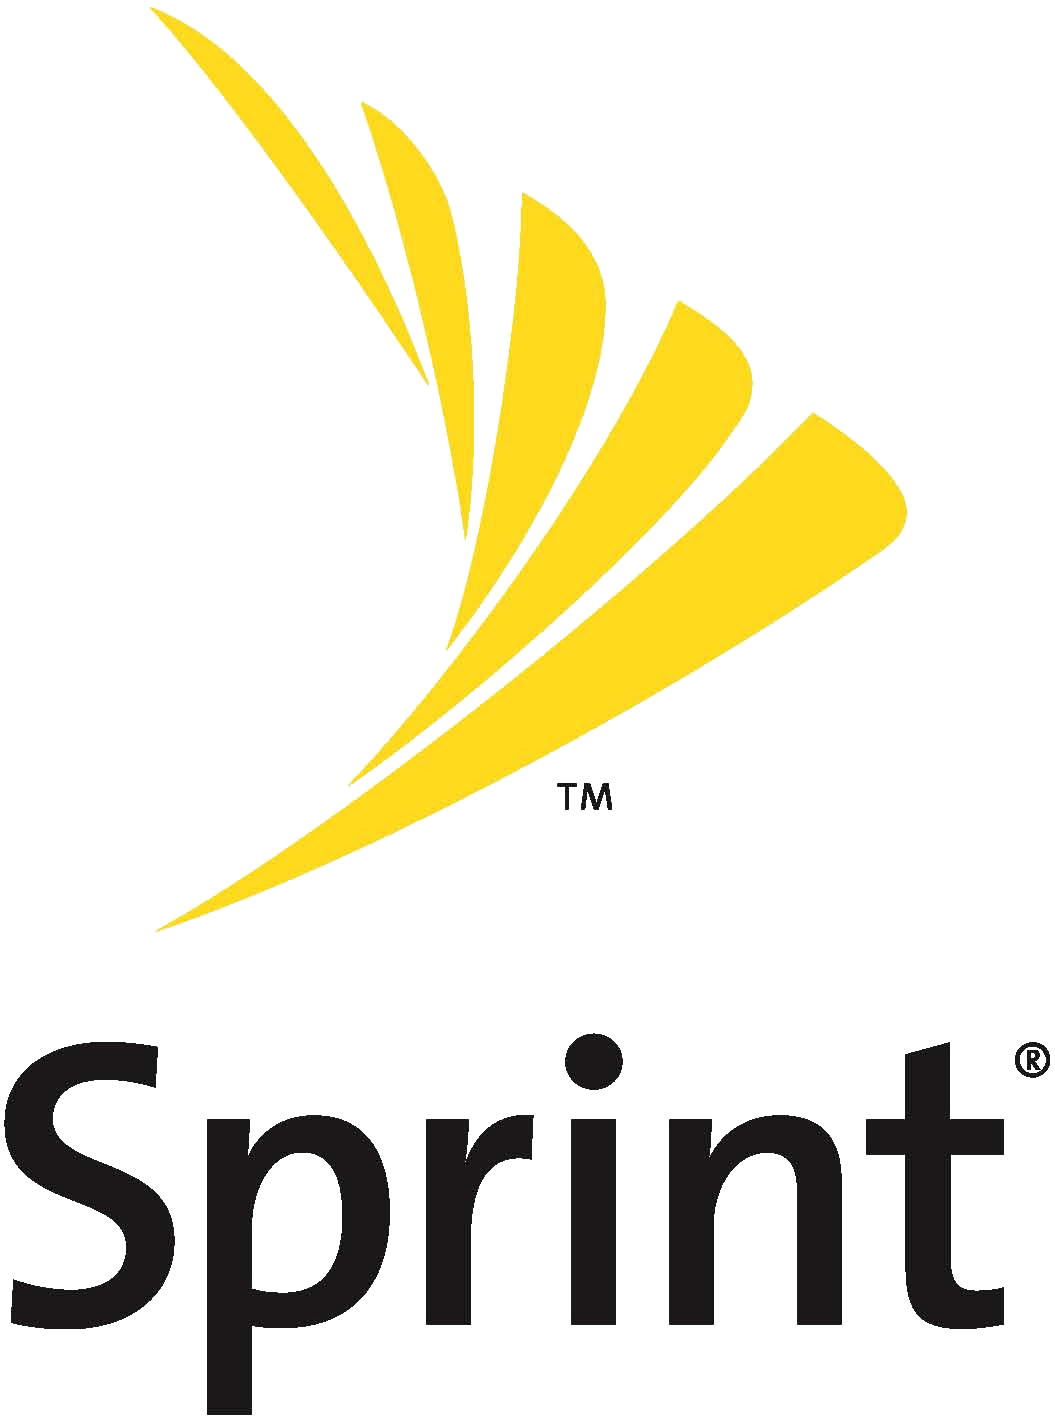 Sprint Rolls Out 4G LTE in Four More Cities